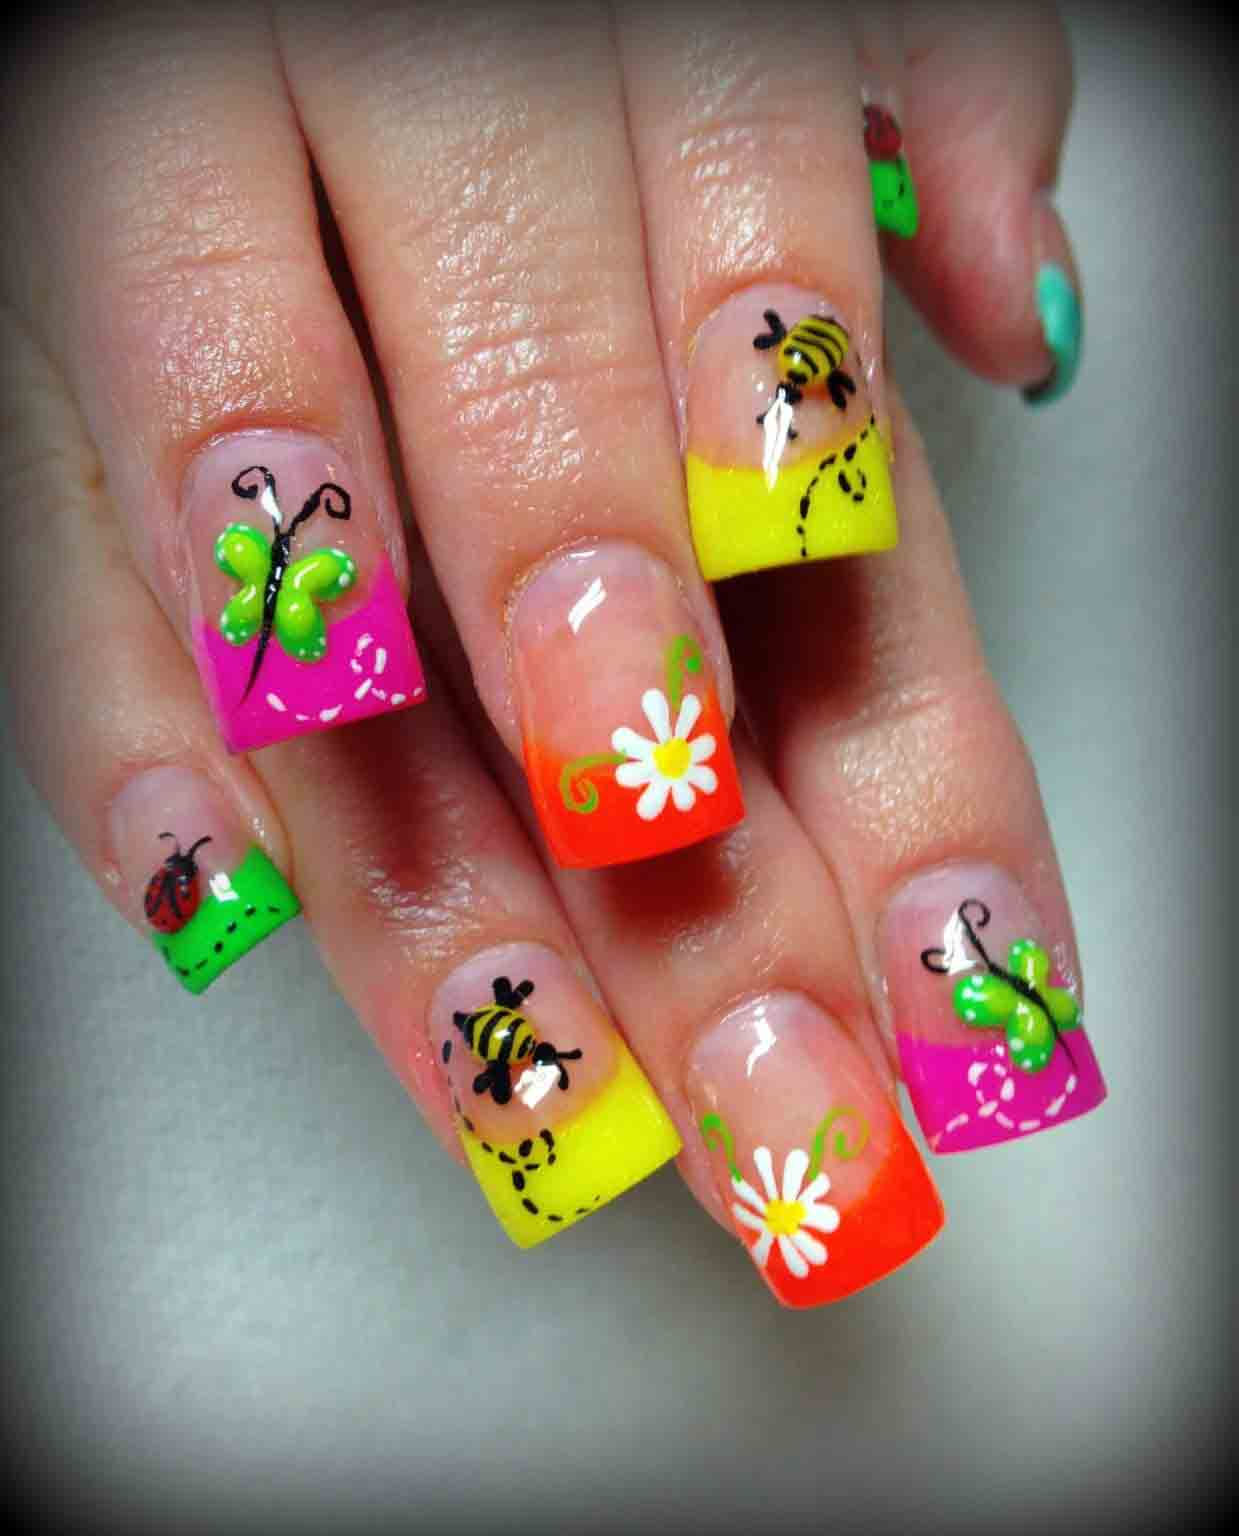 Teenage Nail Art: Best Teen Nail Art Designs 2019 Nail Paint Ideas